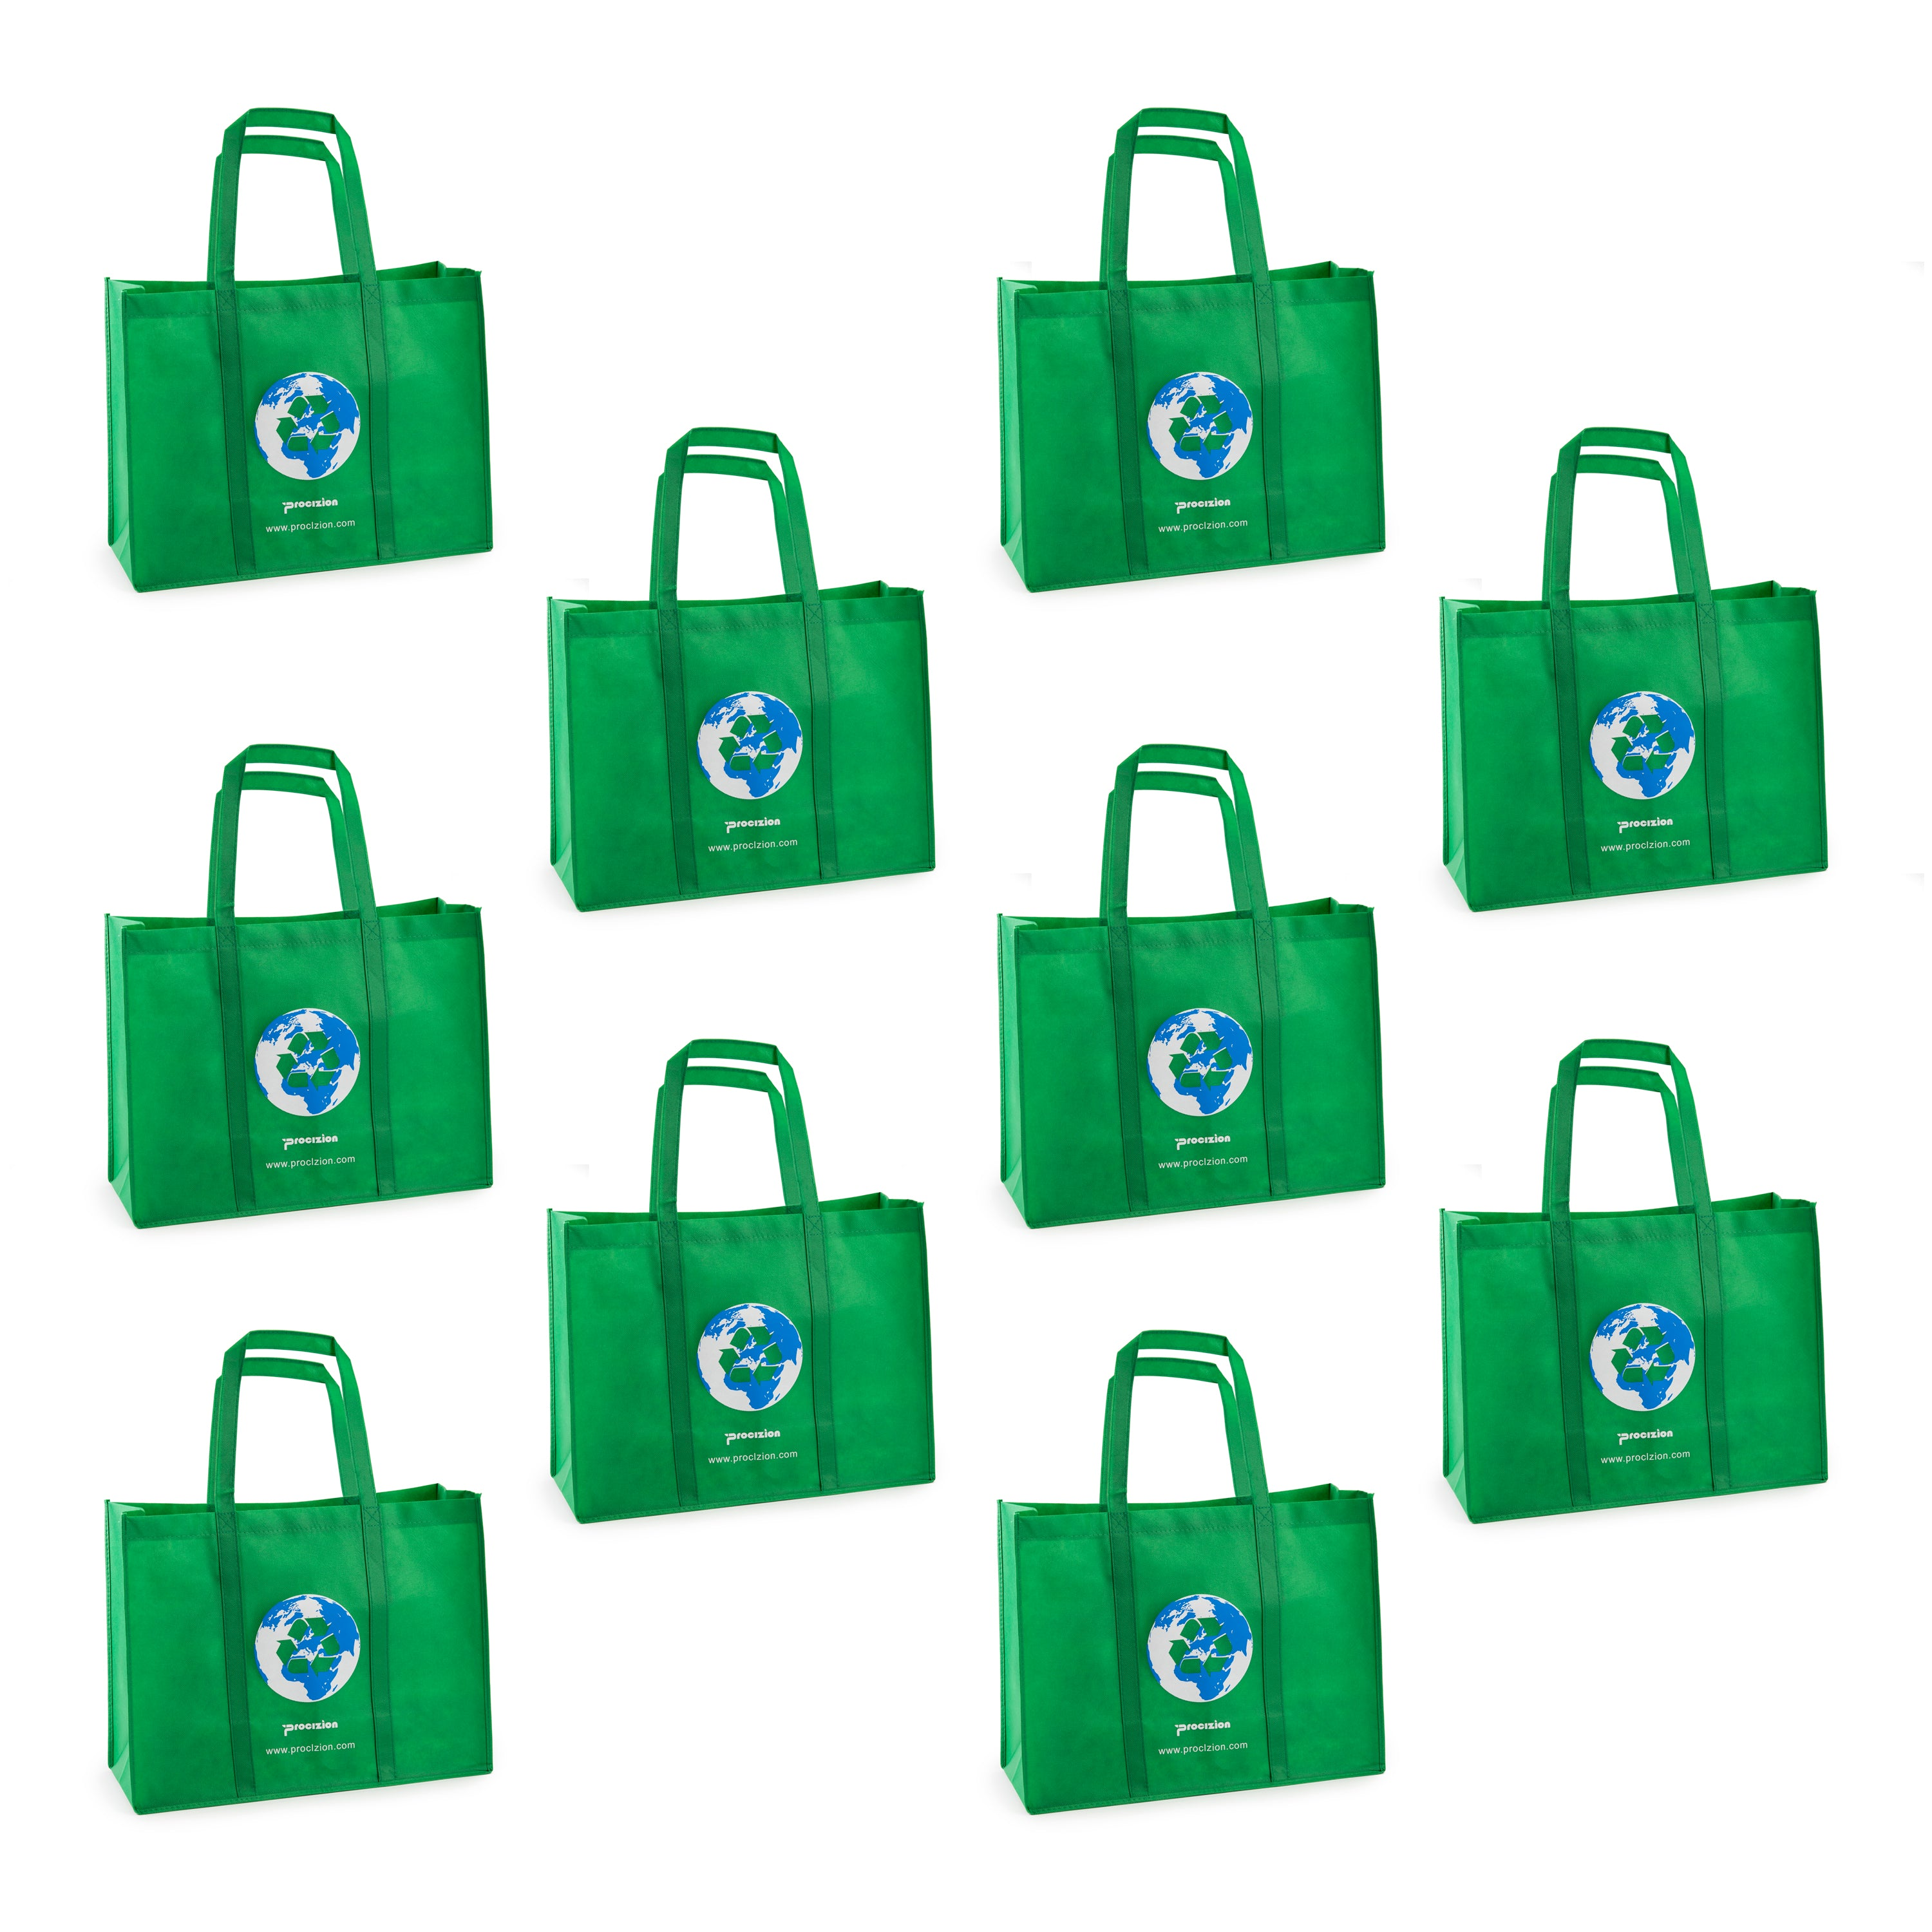 cda30f66e805 Reusable Grocery Tote Shopping Heavy Duty Bag with Reinforced Handles –  Procizion